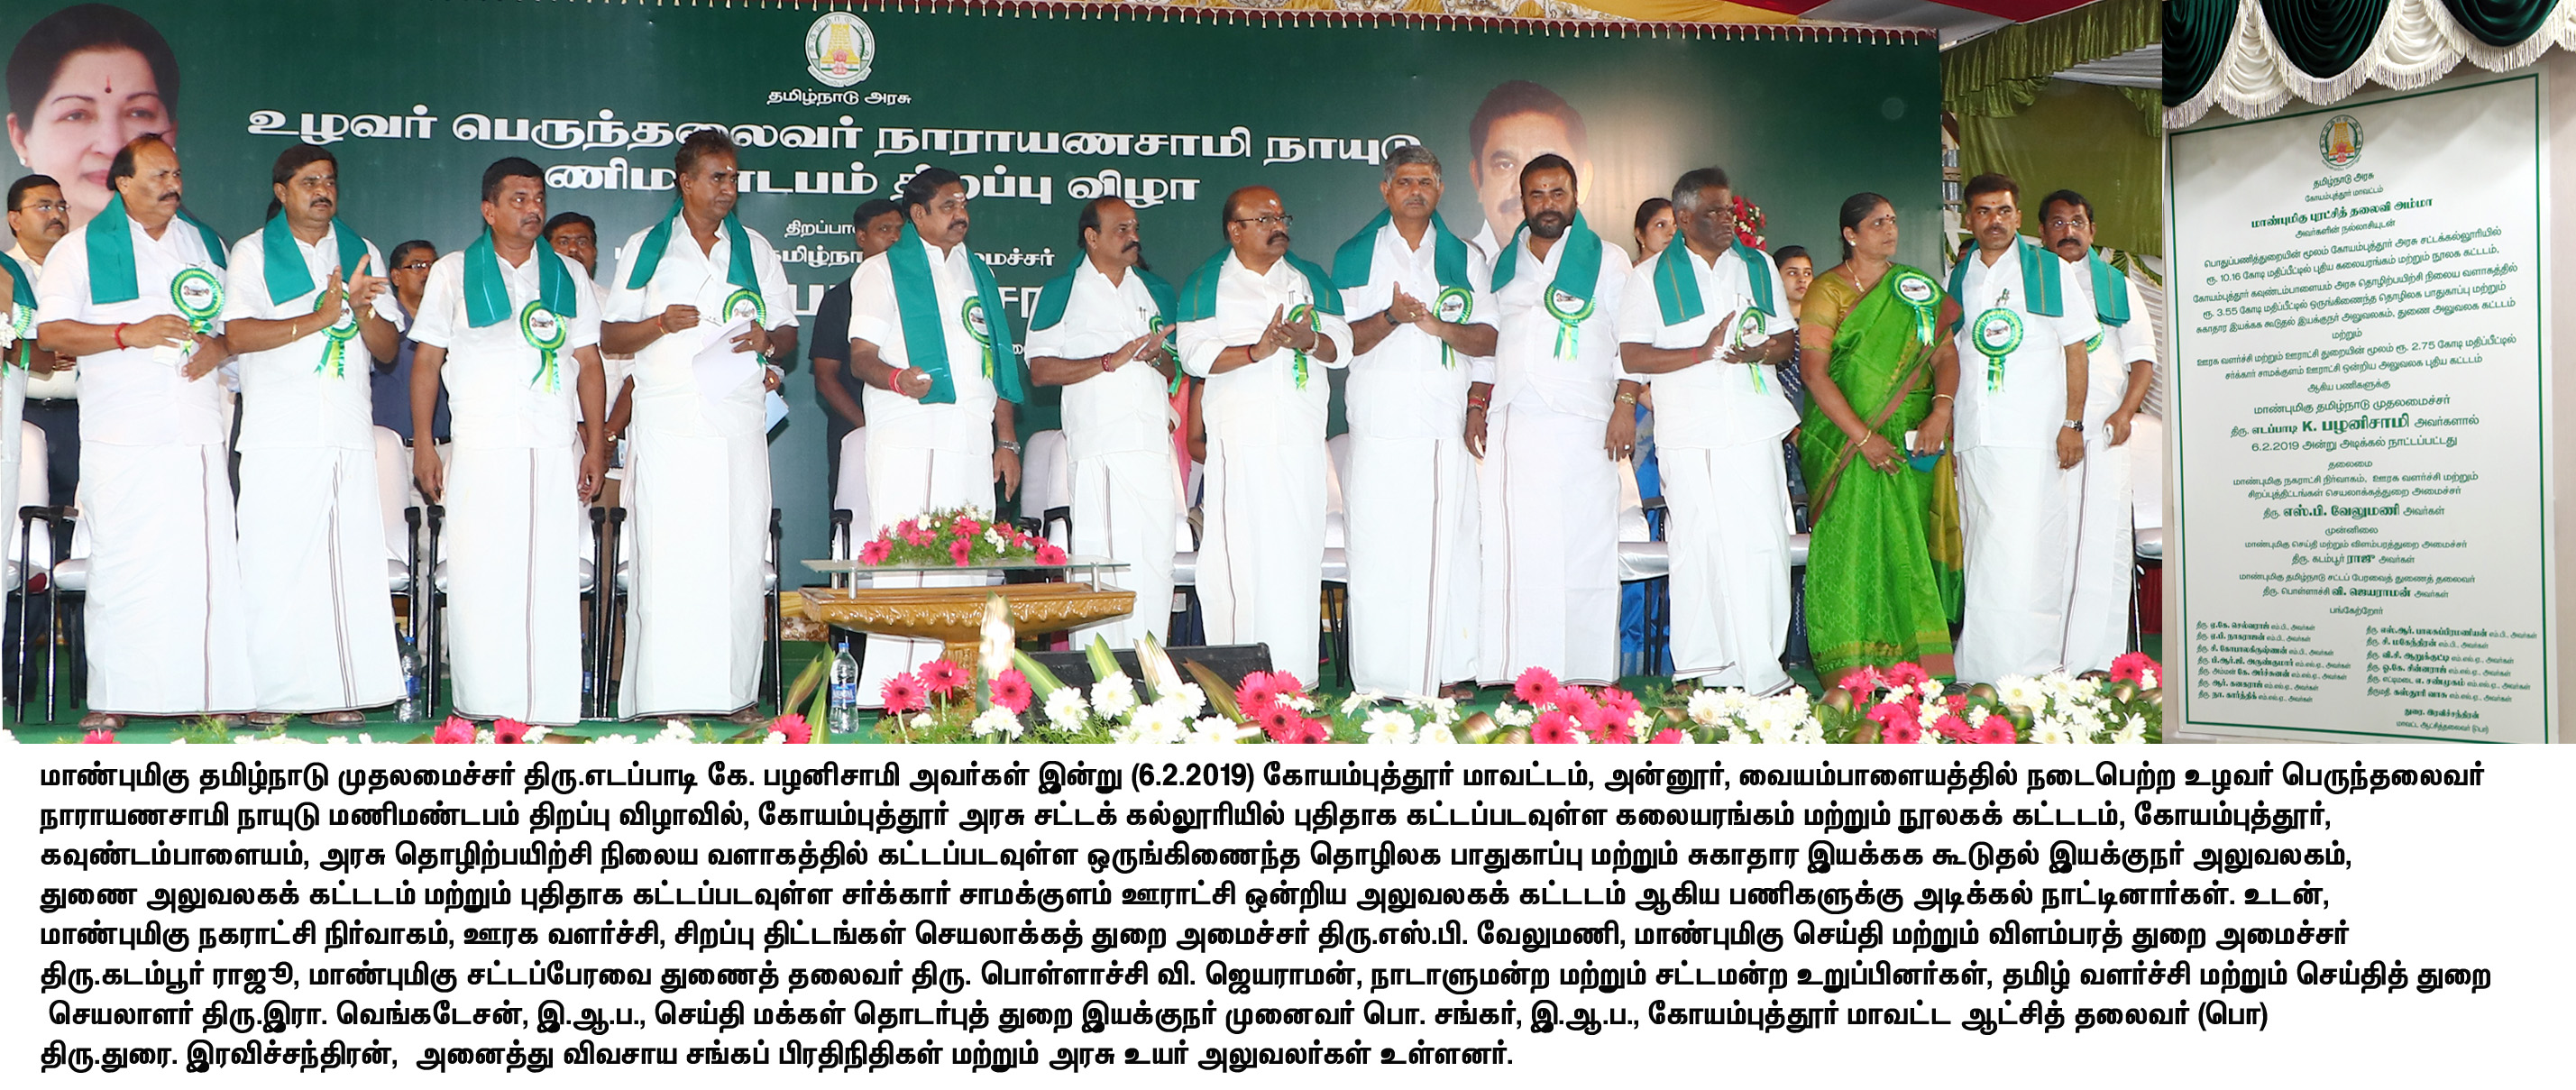 Honble Chief Minister inaugurated Industrial Parks, Manimantapam and laid foundation stone for Santhalingar Hospital